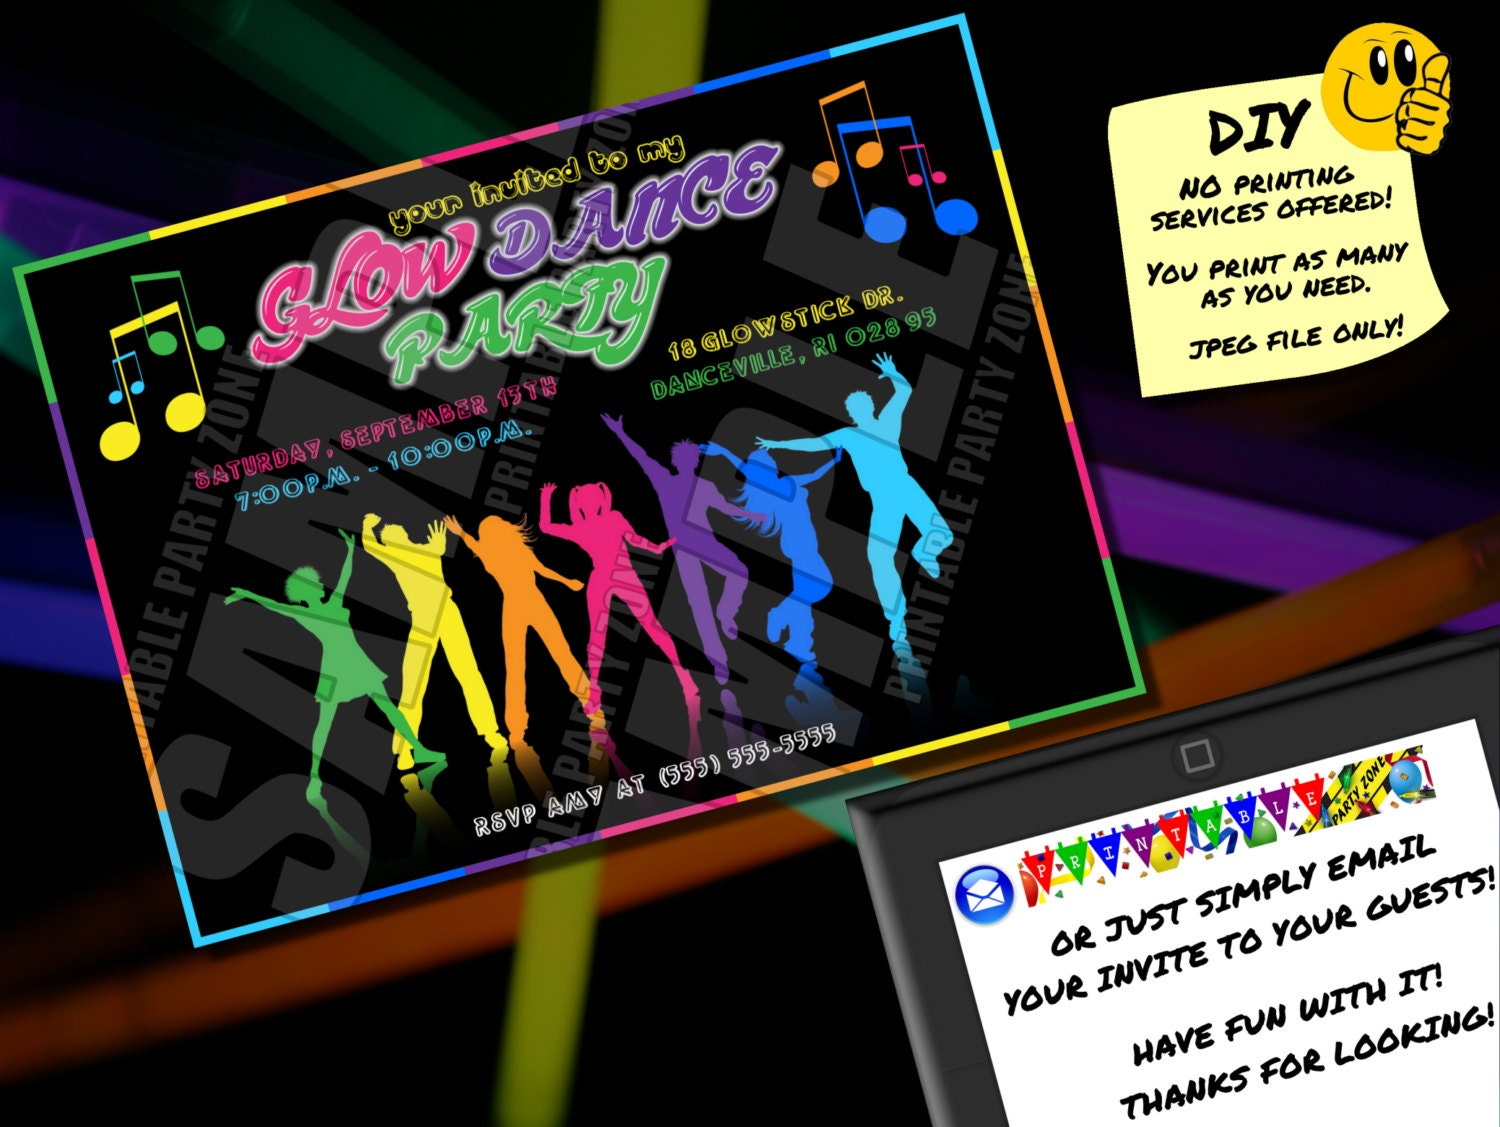 GLOW DANCE PARTY Invitation Printable Invite Emailable